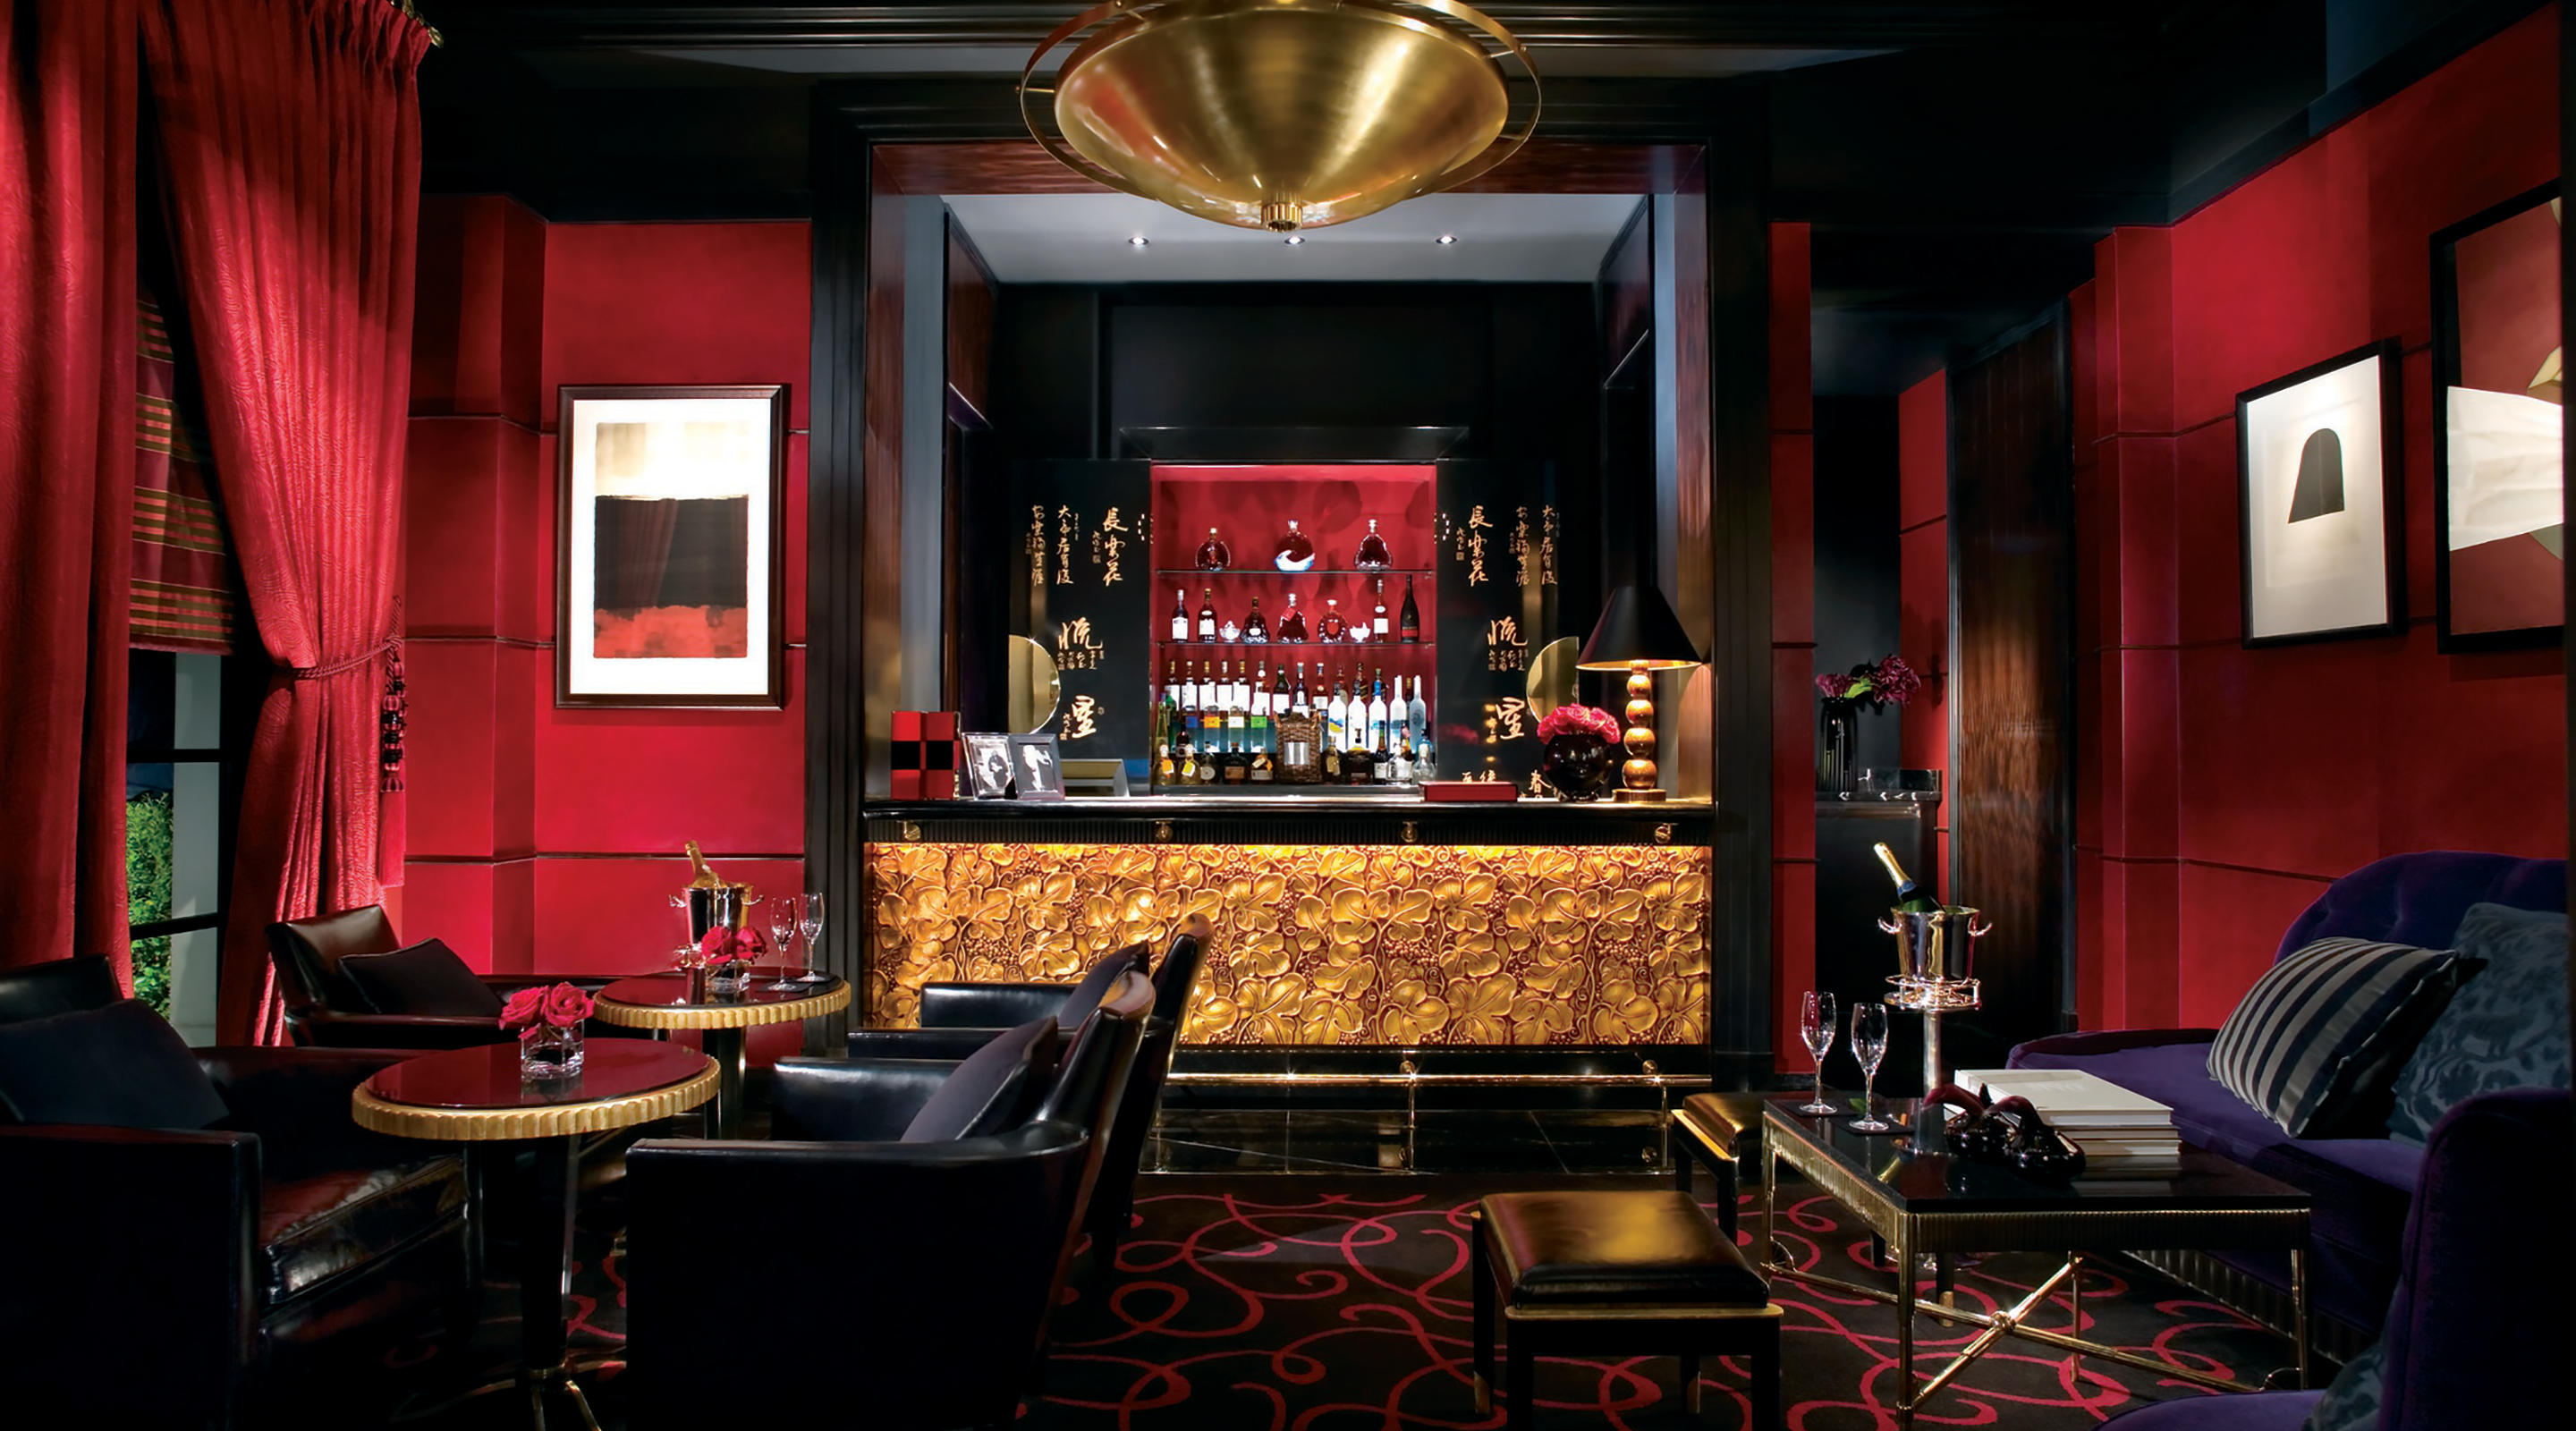 The Joel Robuchon mansion interior.